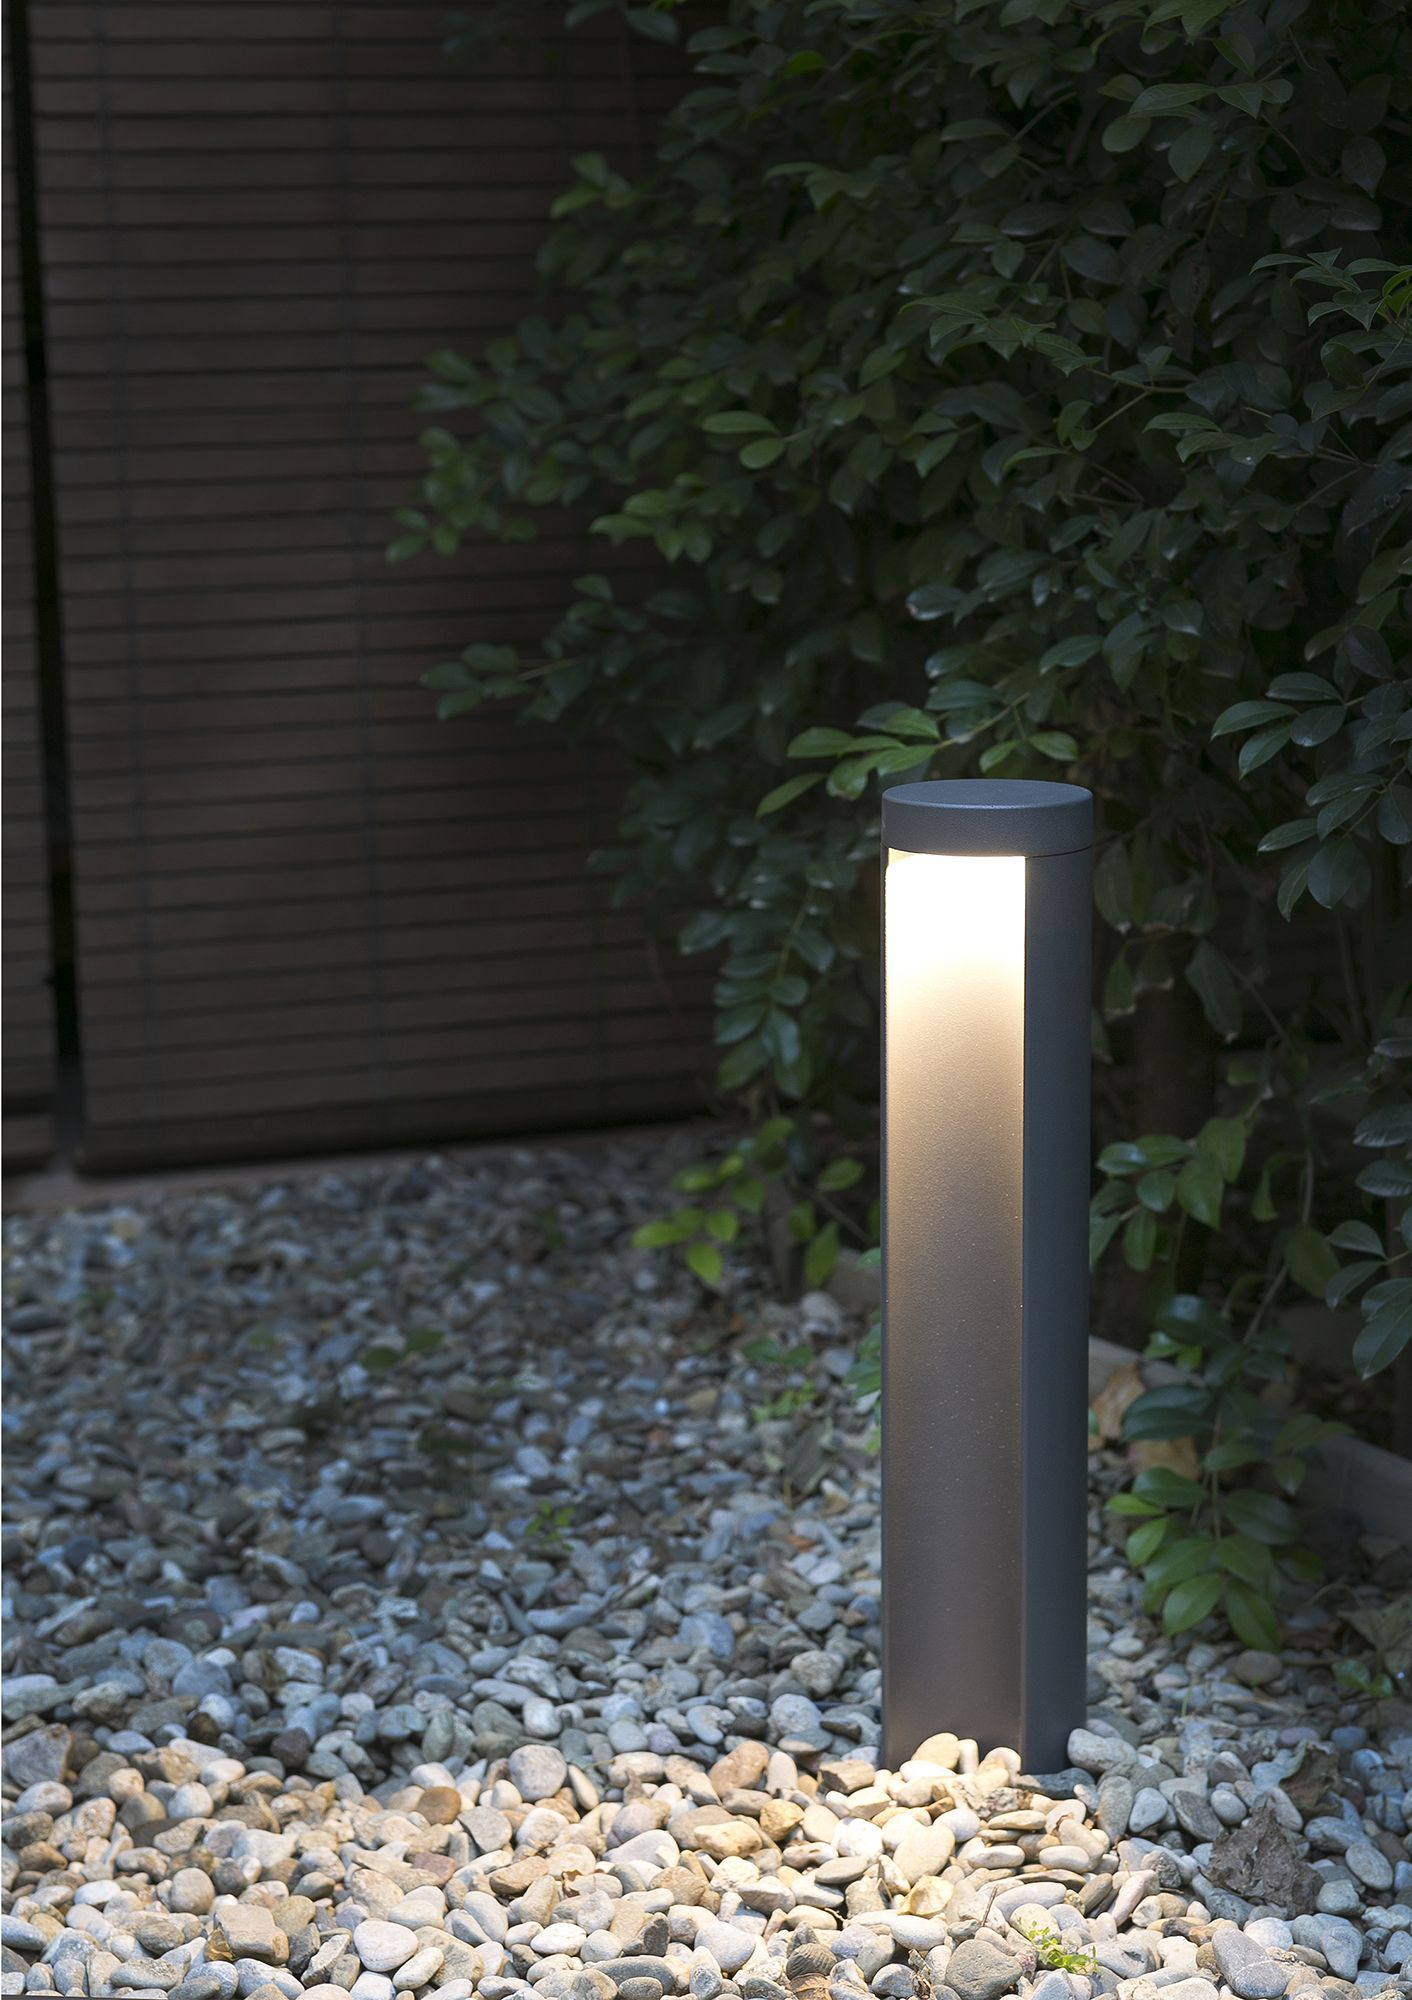 Eclairage Exterieur Jardin Led Charmant Chandra Led Beacon Of 73 Luxe Eclairage Exterieur Jardin Led